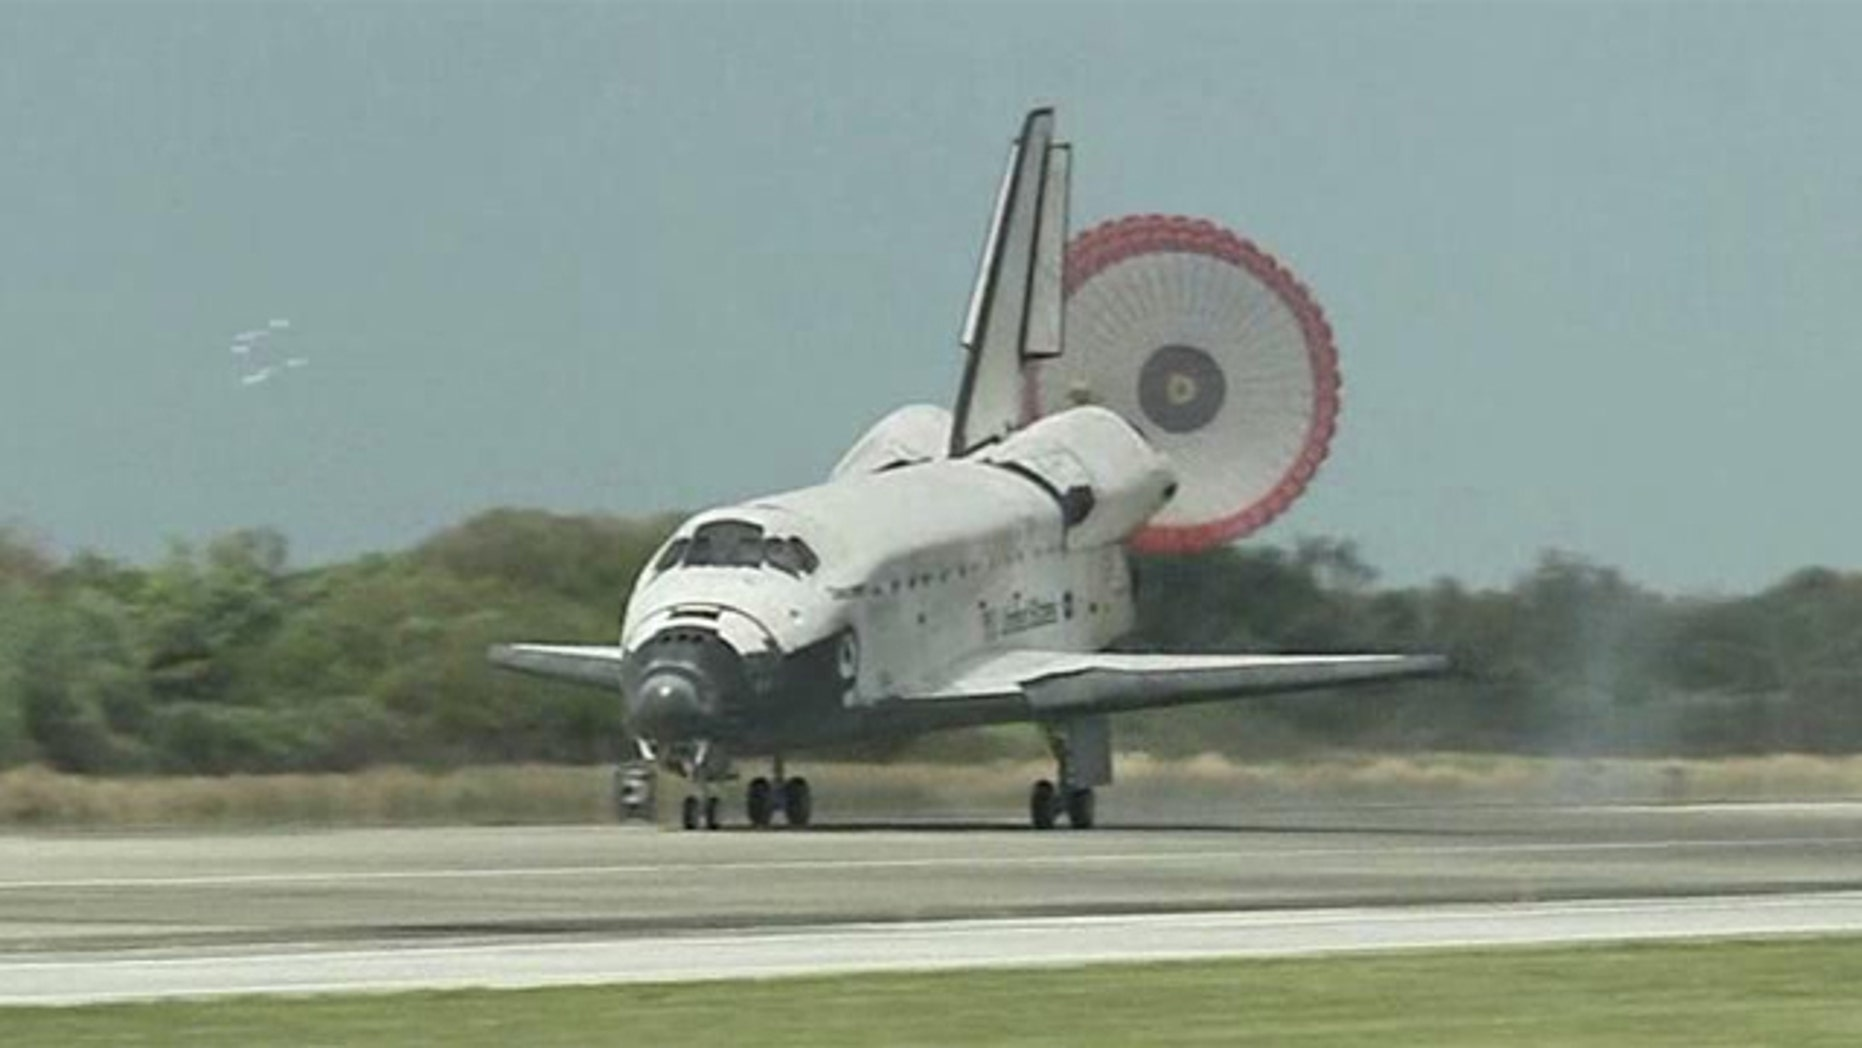 Space shuttle discovery rolls to its final landing at Kennedy Space Center in Florida.